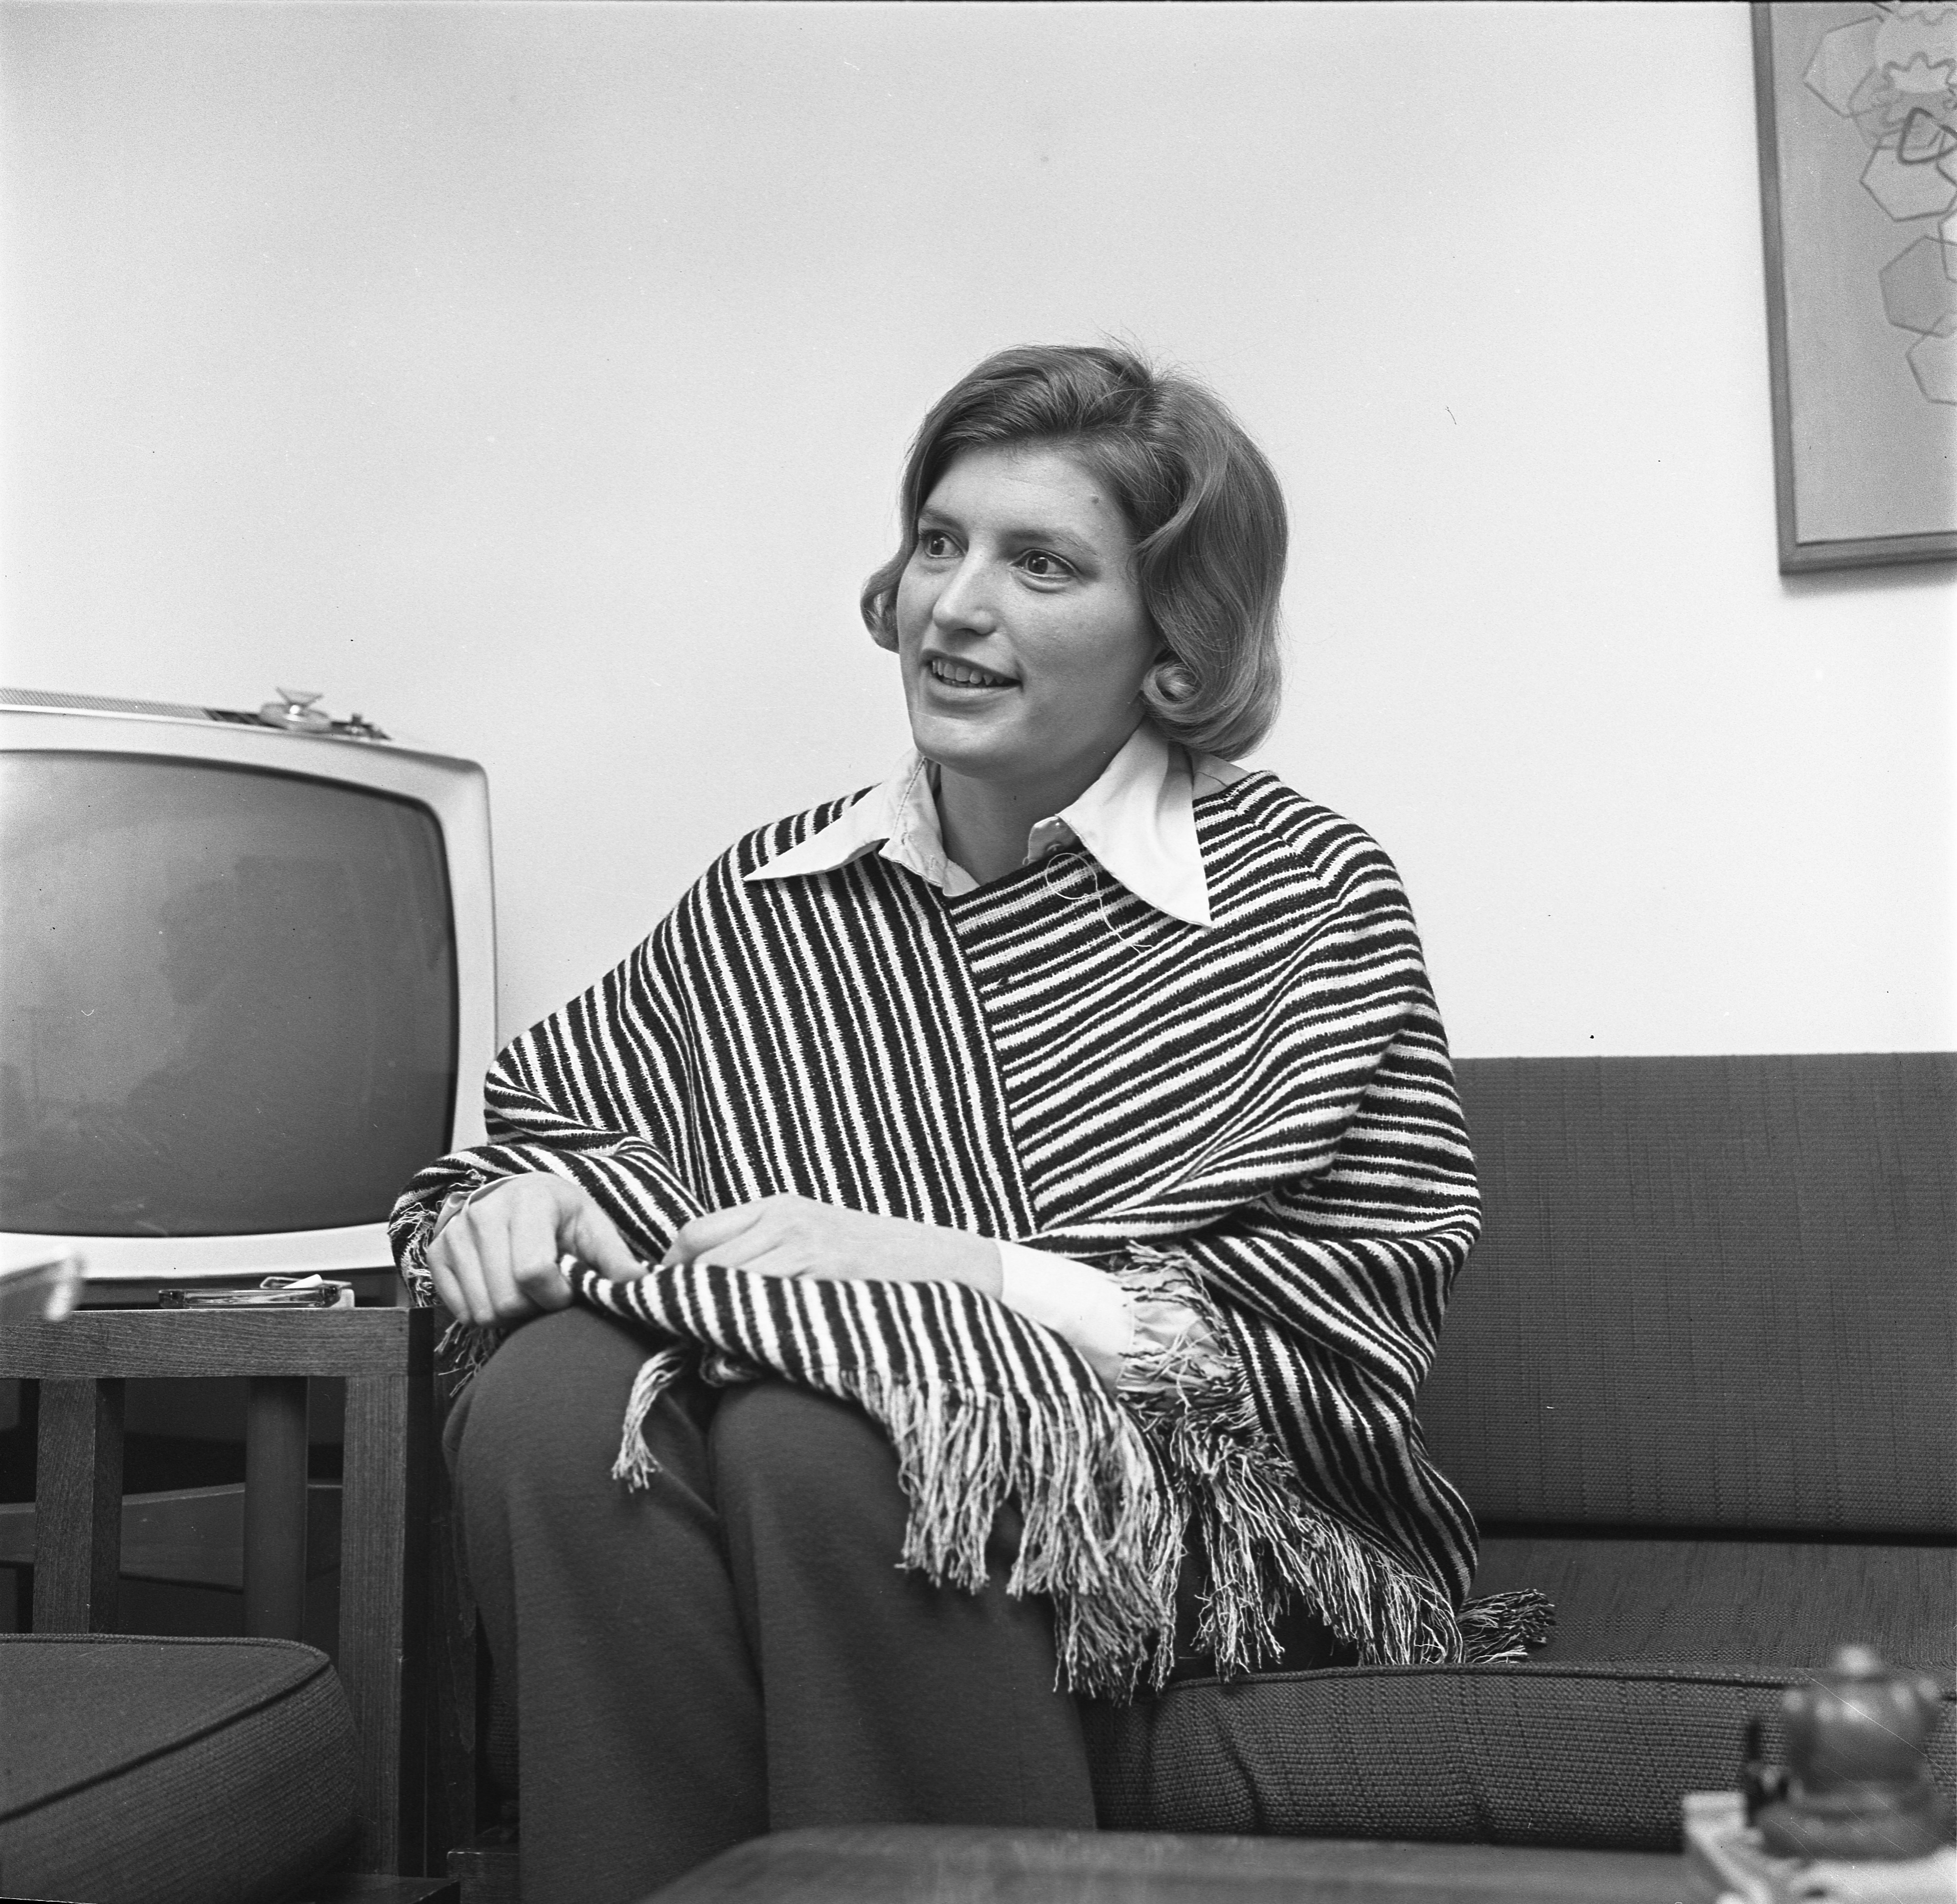 Mary Dabbs Speaks To Reporter About Women's Rights, March 1970 image